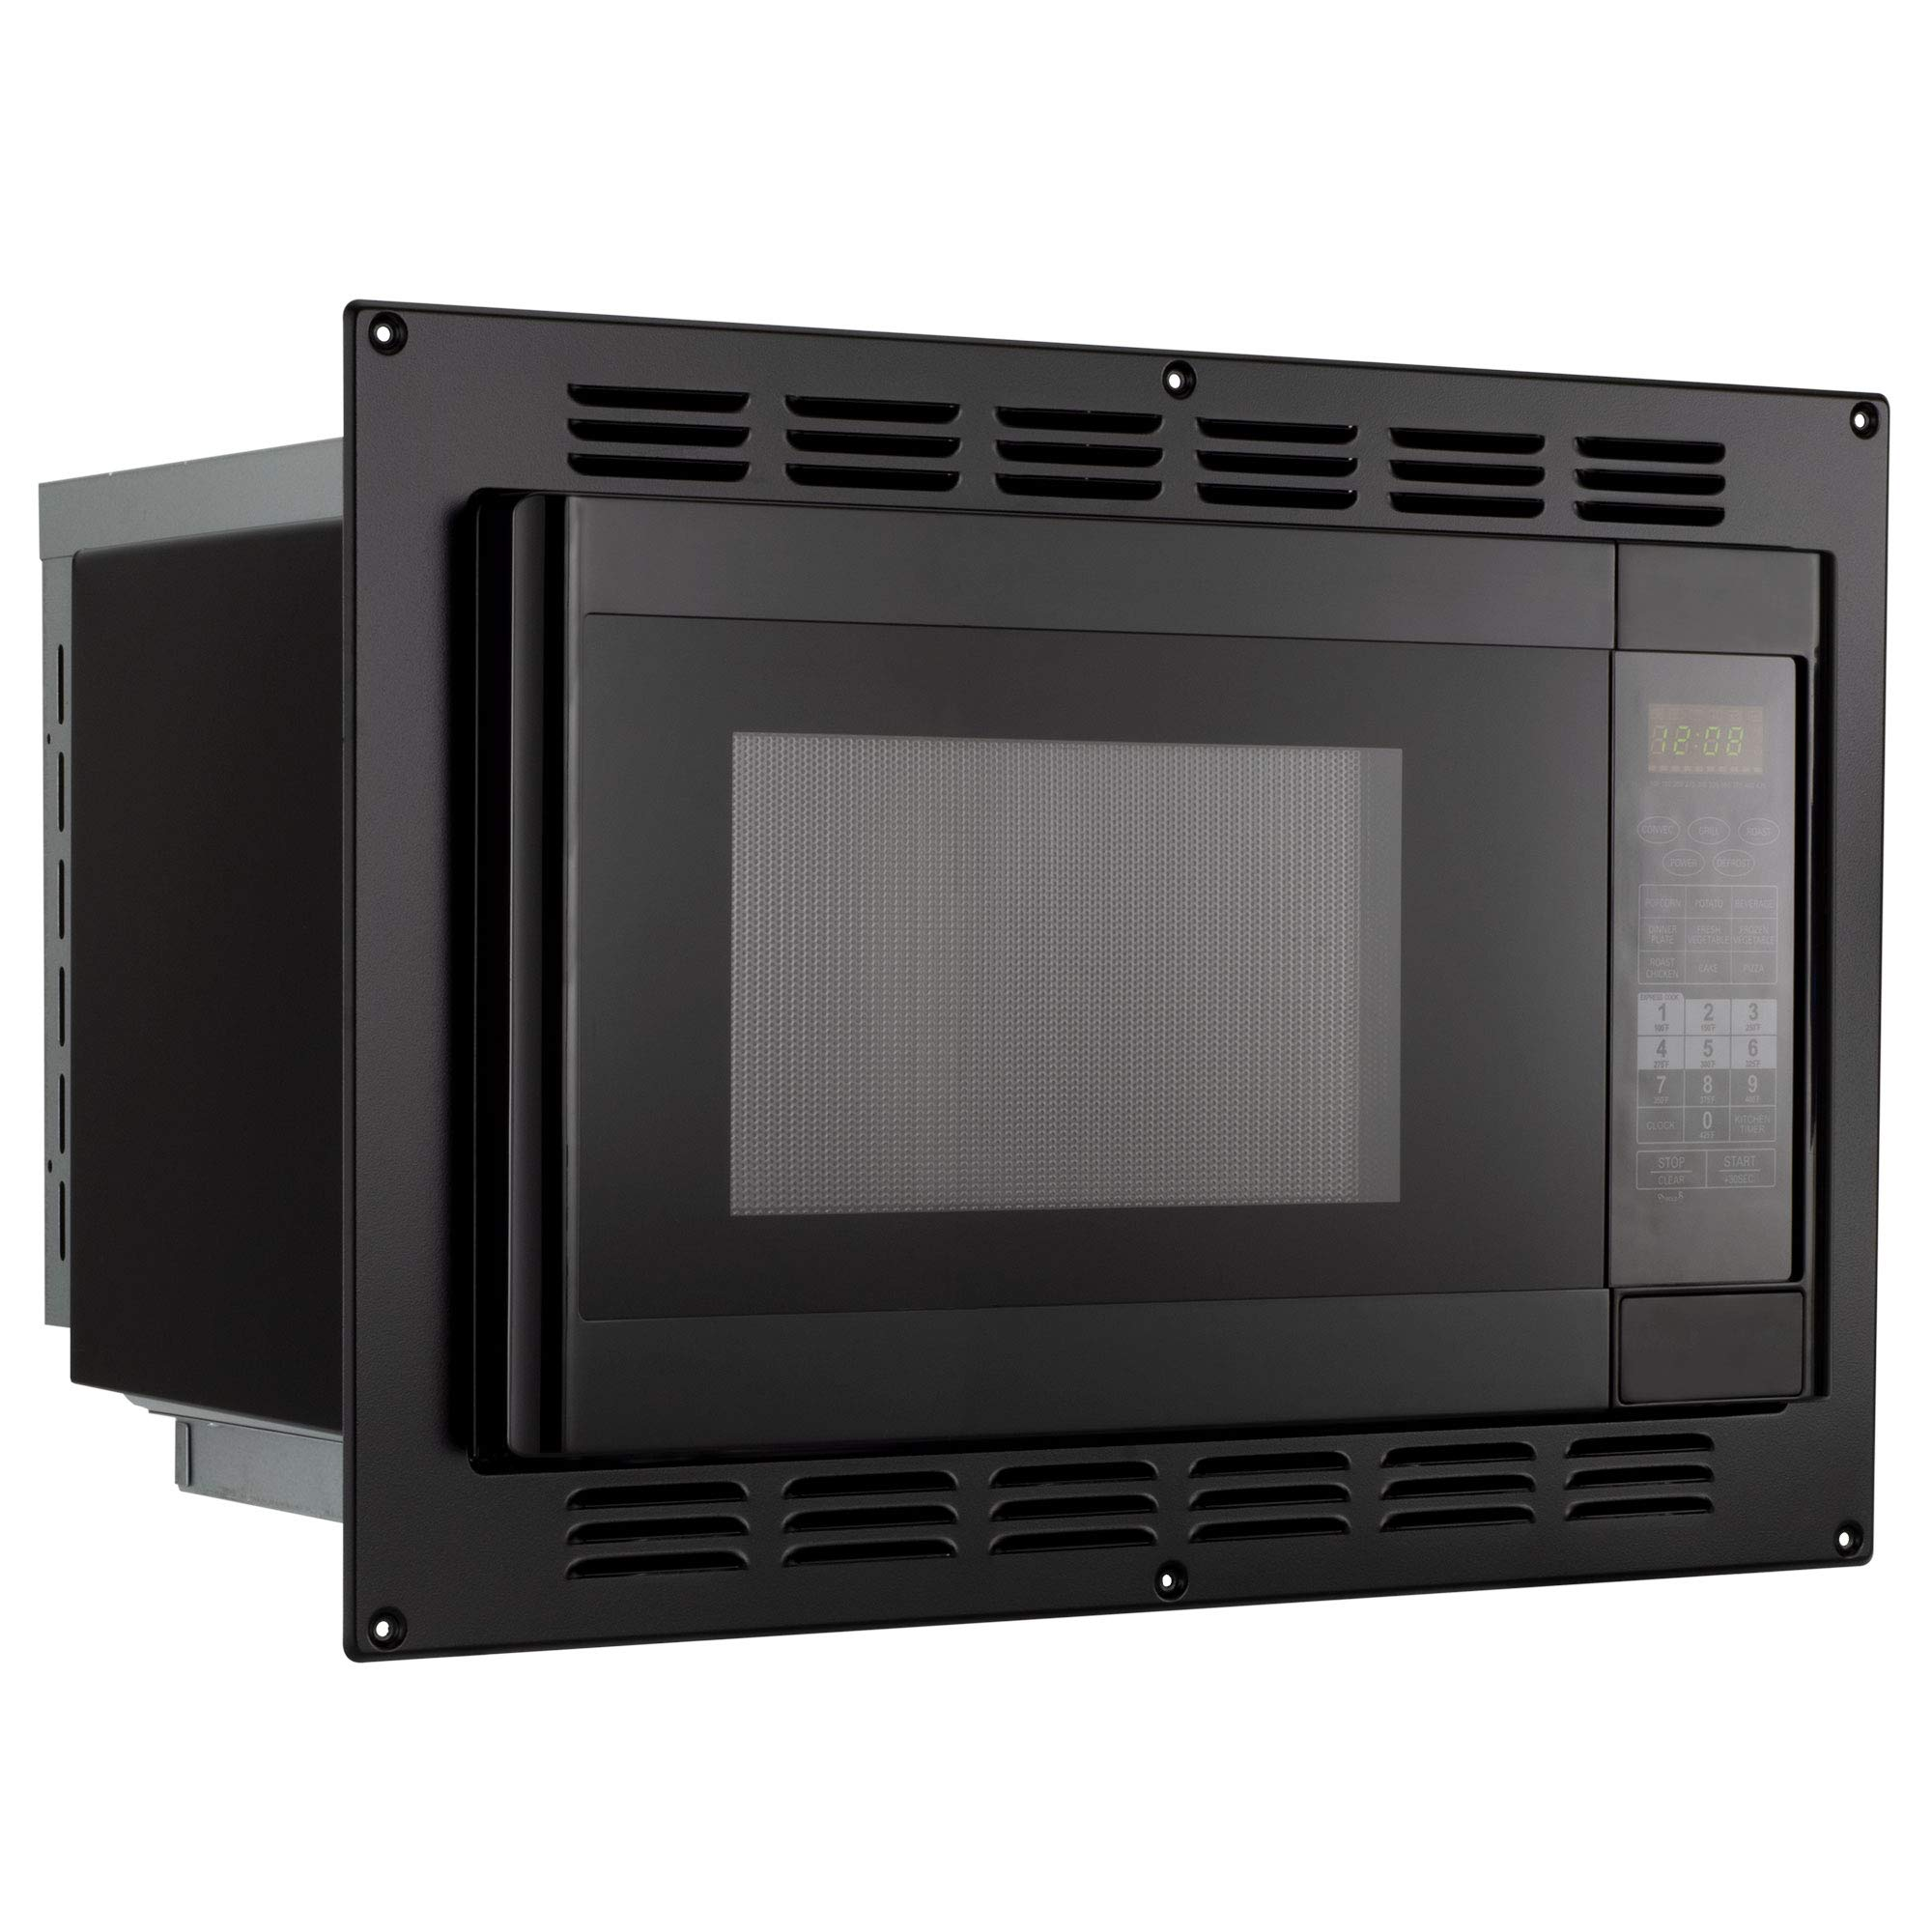 RV Convection Microwave Black 1.1 Cu. ft | 120V | Microwave | Appliances by RecPro